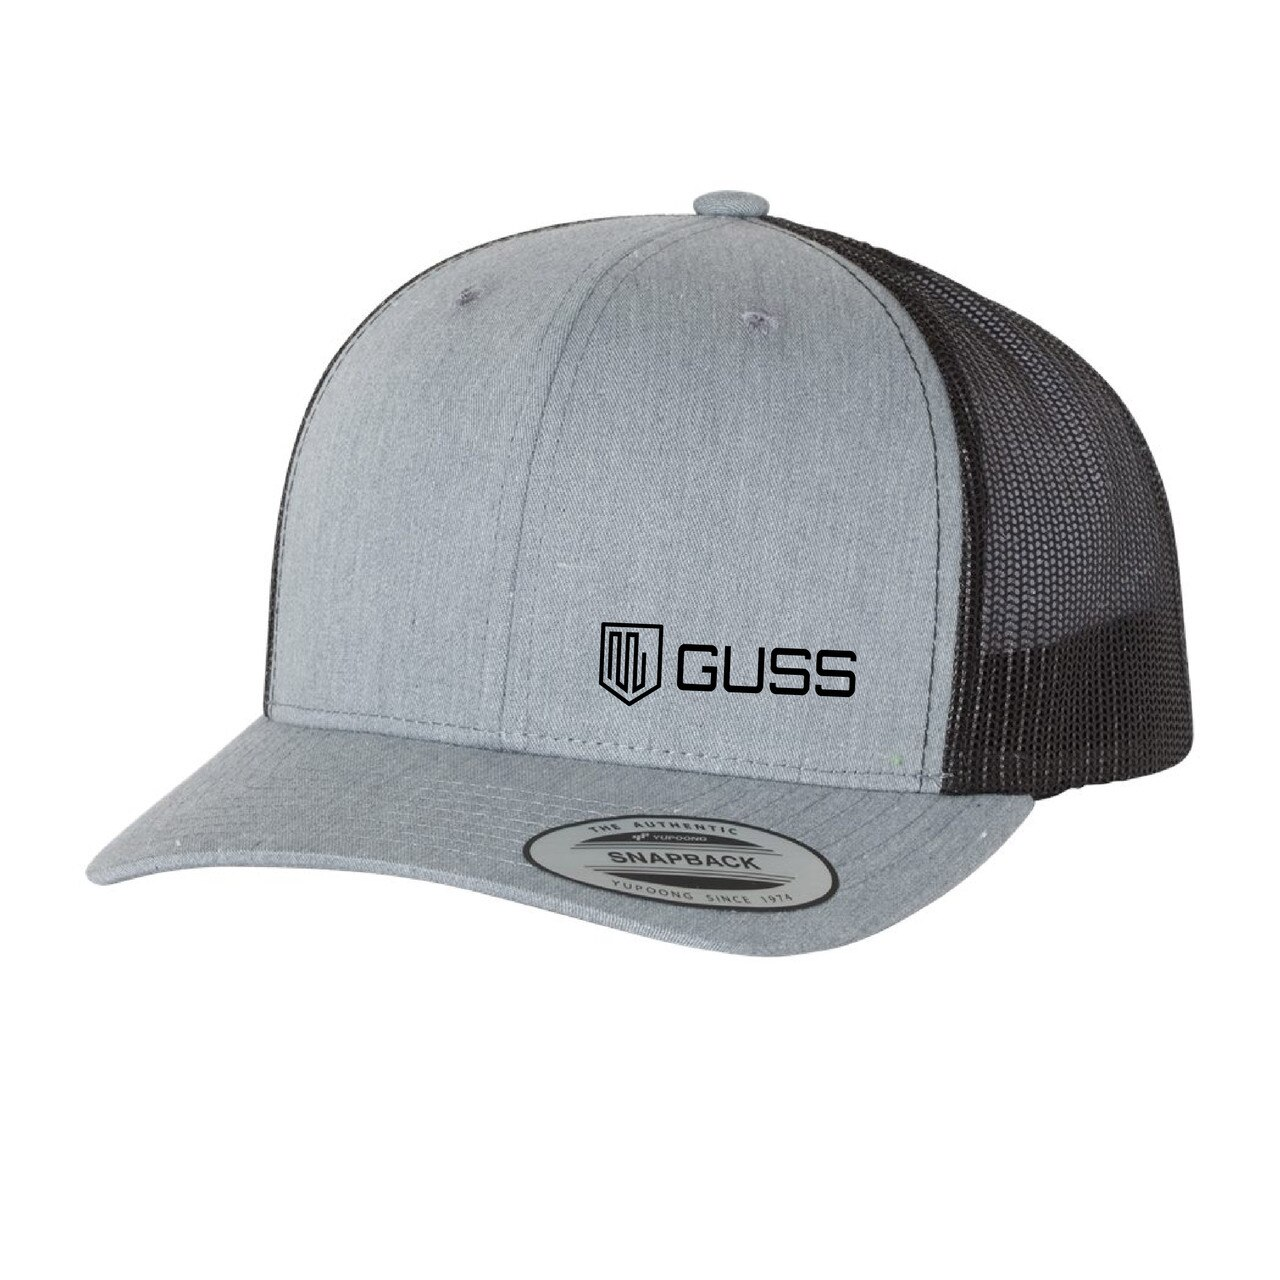 Adult Retro Trucker Cap, Snap Back - Heather / Black OS